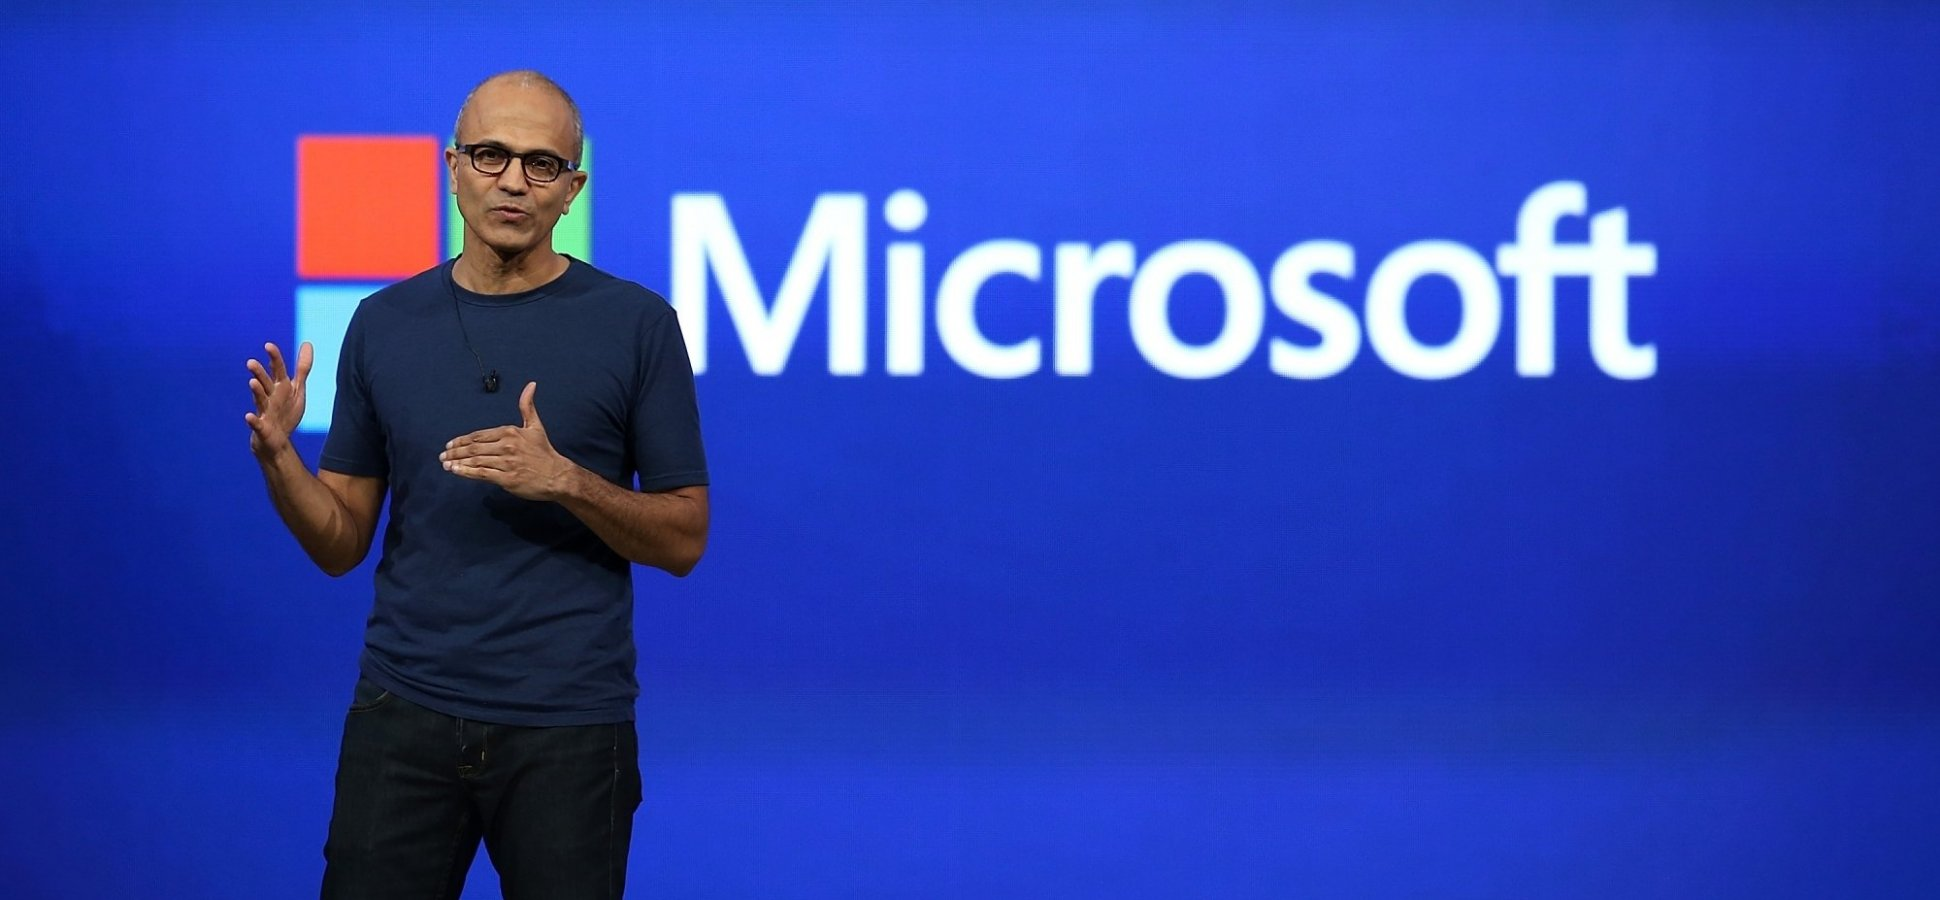 Microsoft Just Showed Why Being Number 2 Is Sometimes the Best Way to Be Number 1